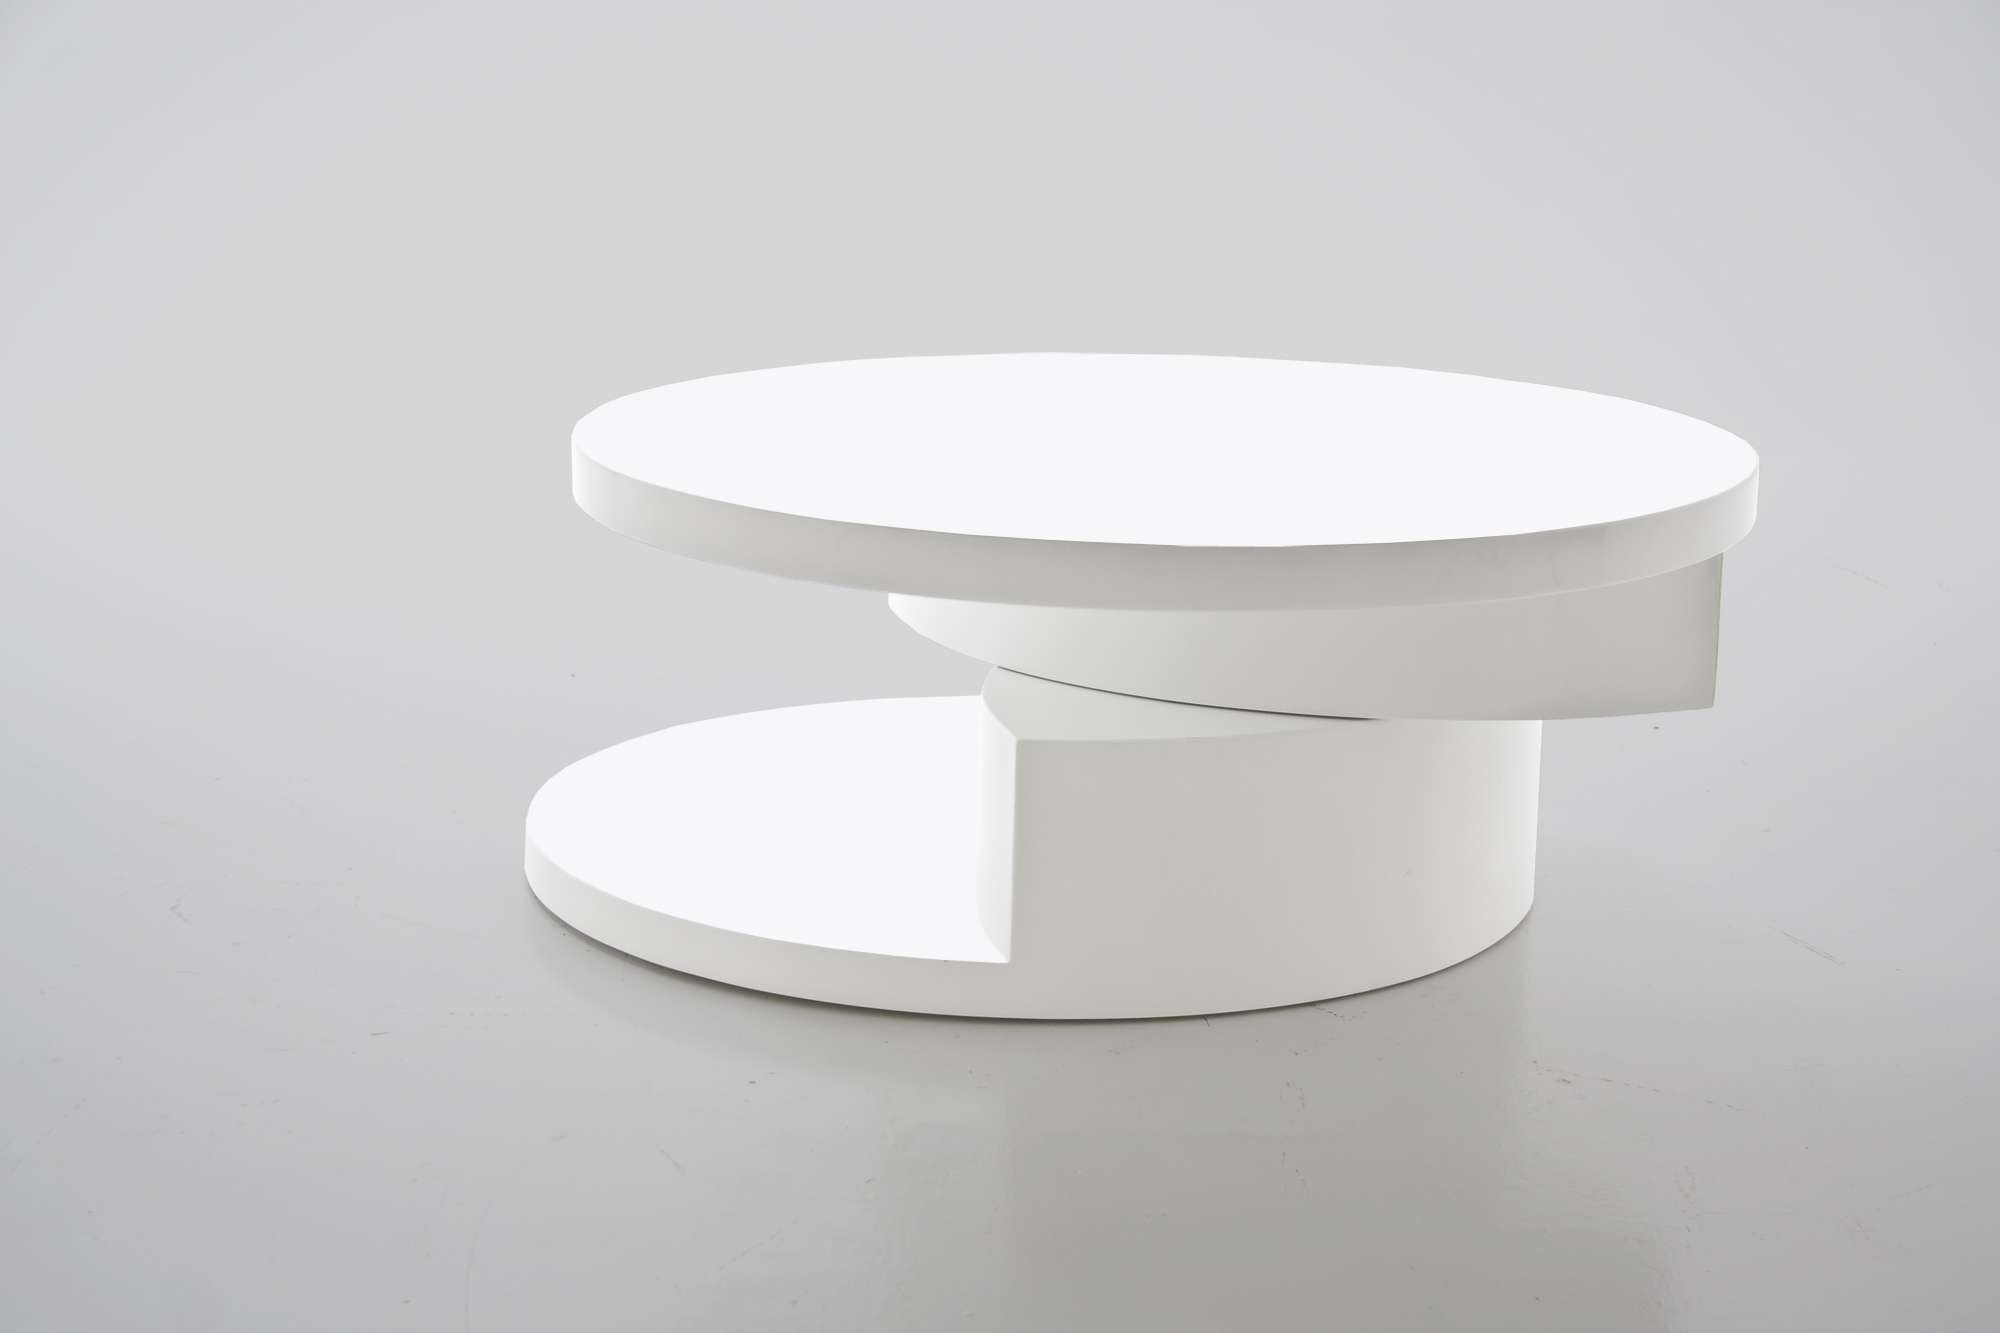 Popular Round Coffee Tables With Storage Within Coffee Table : Whited Coffee Table Ikea With Drawers (View 14 of 20)